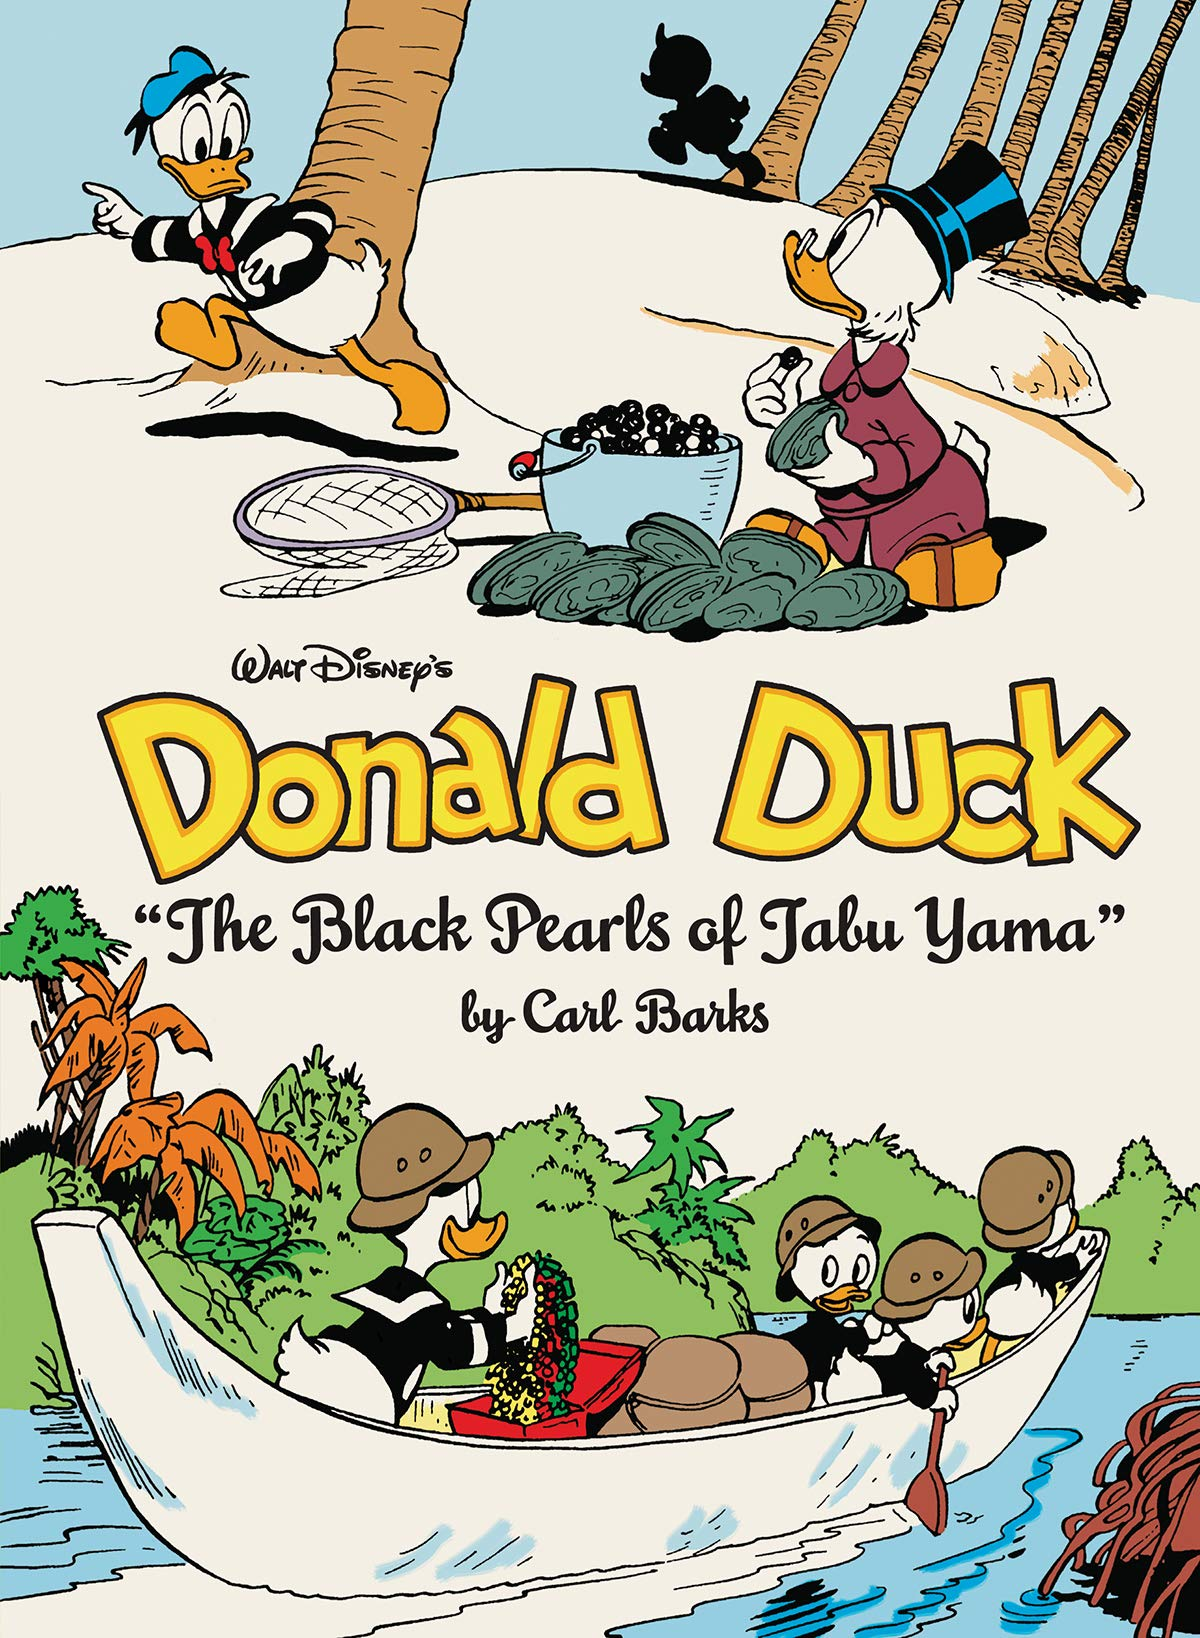 Walt Disney's Donald Duck  'the Black Pearls Of Tabu Yama'  The Complete Carl Barks Disney Library Vol. 19